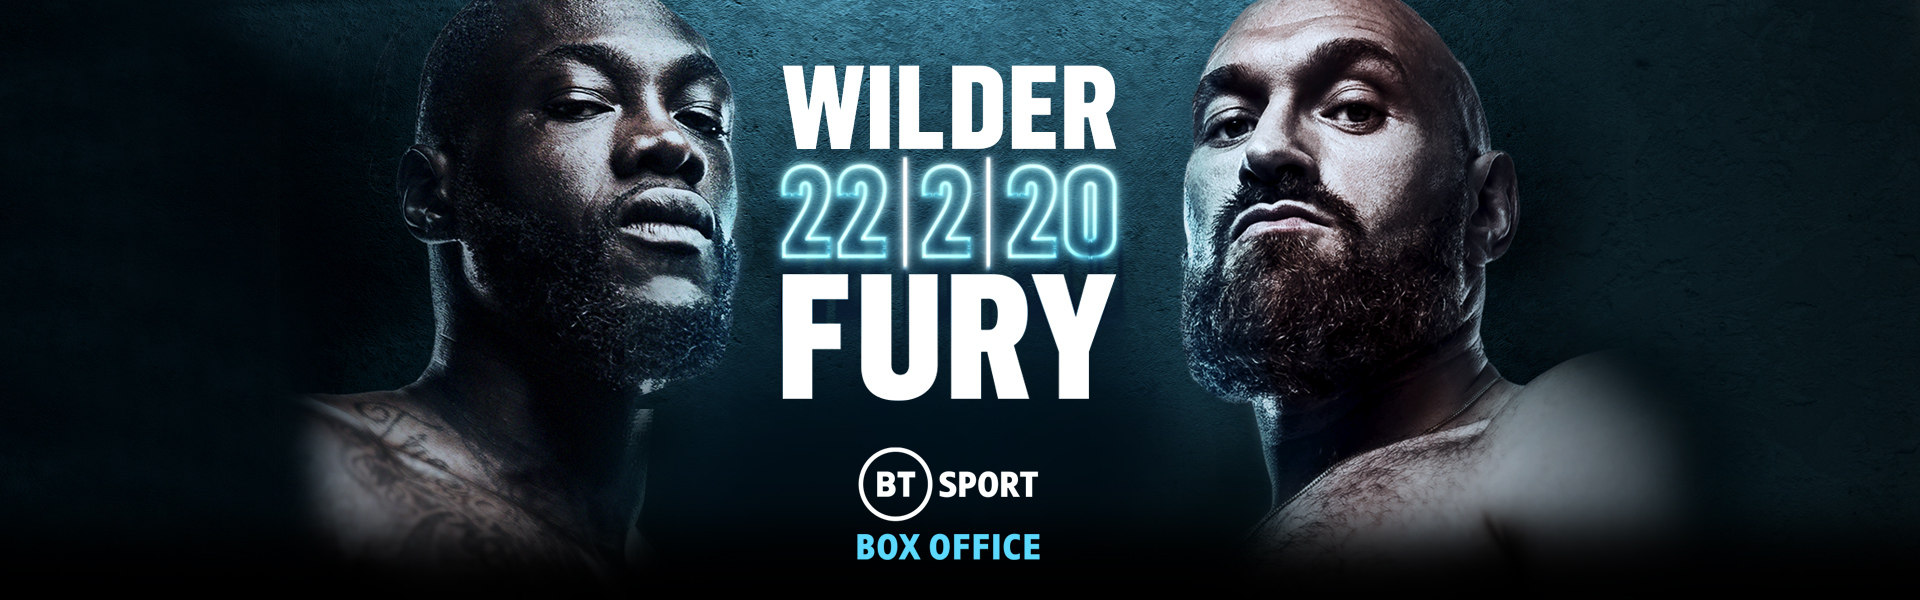 Watch Wilder vs Fury 2